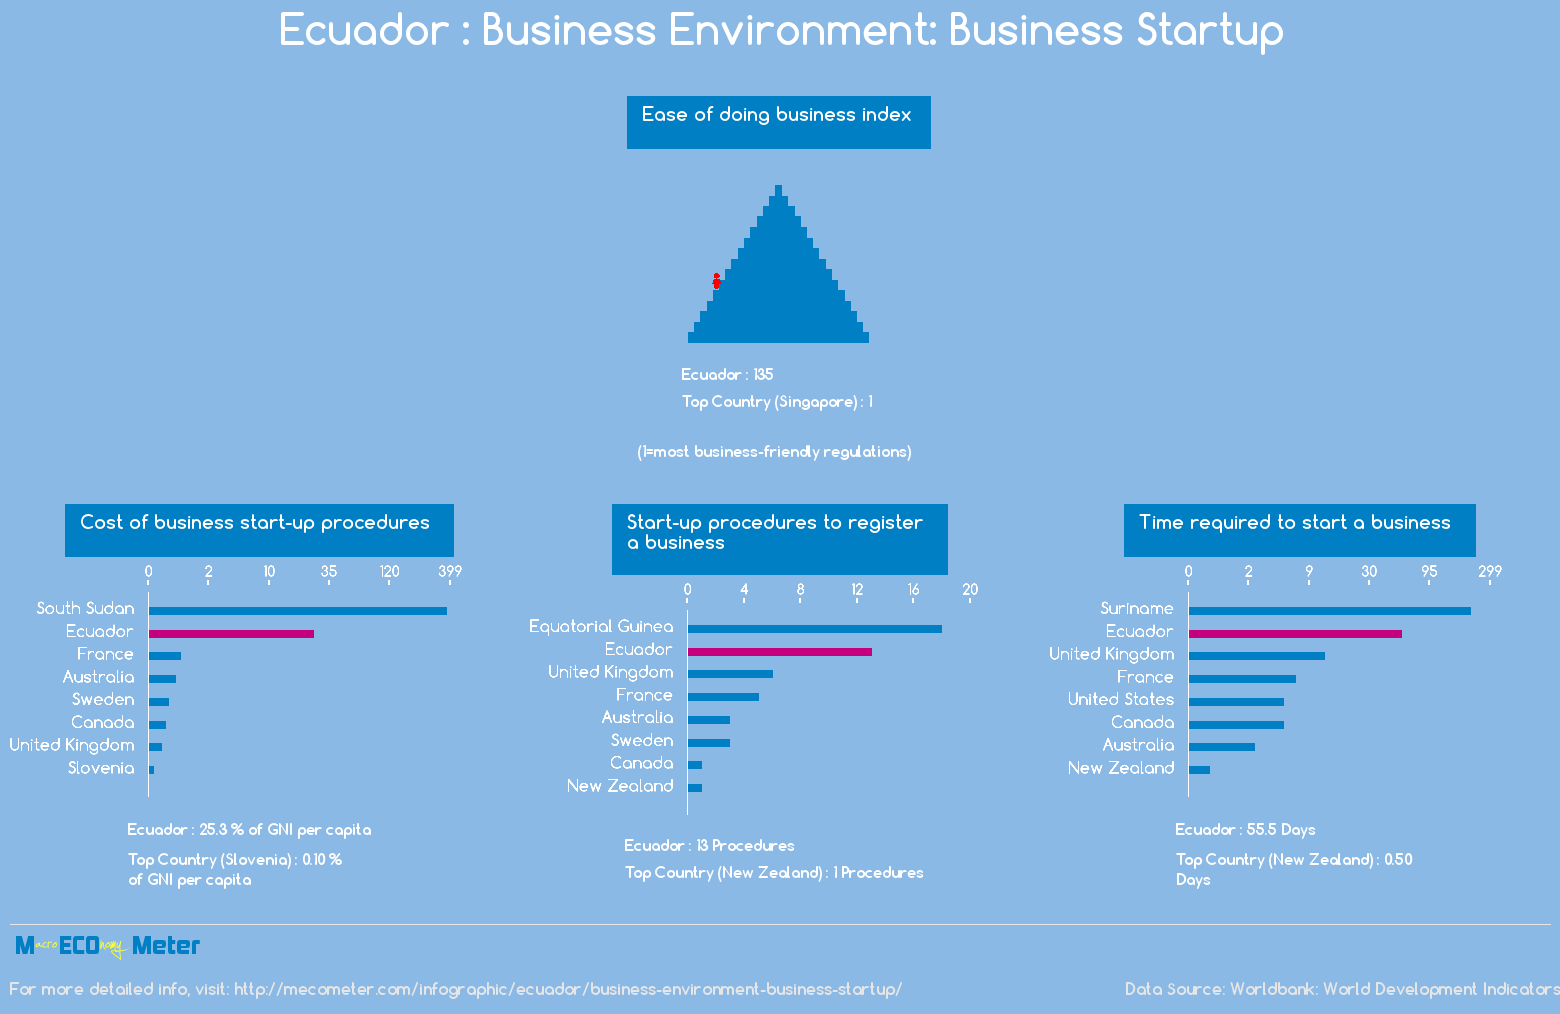 Ecuador : Business Environment: Business Startup